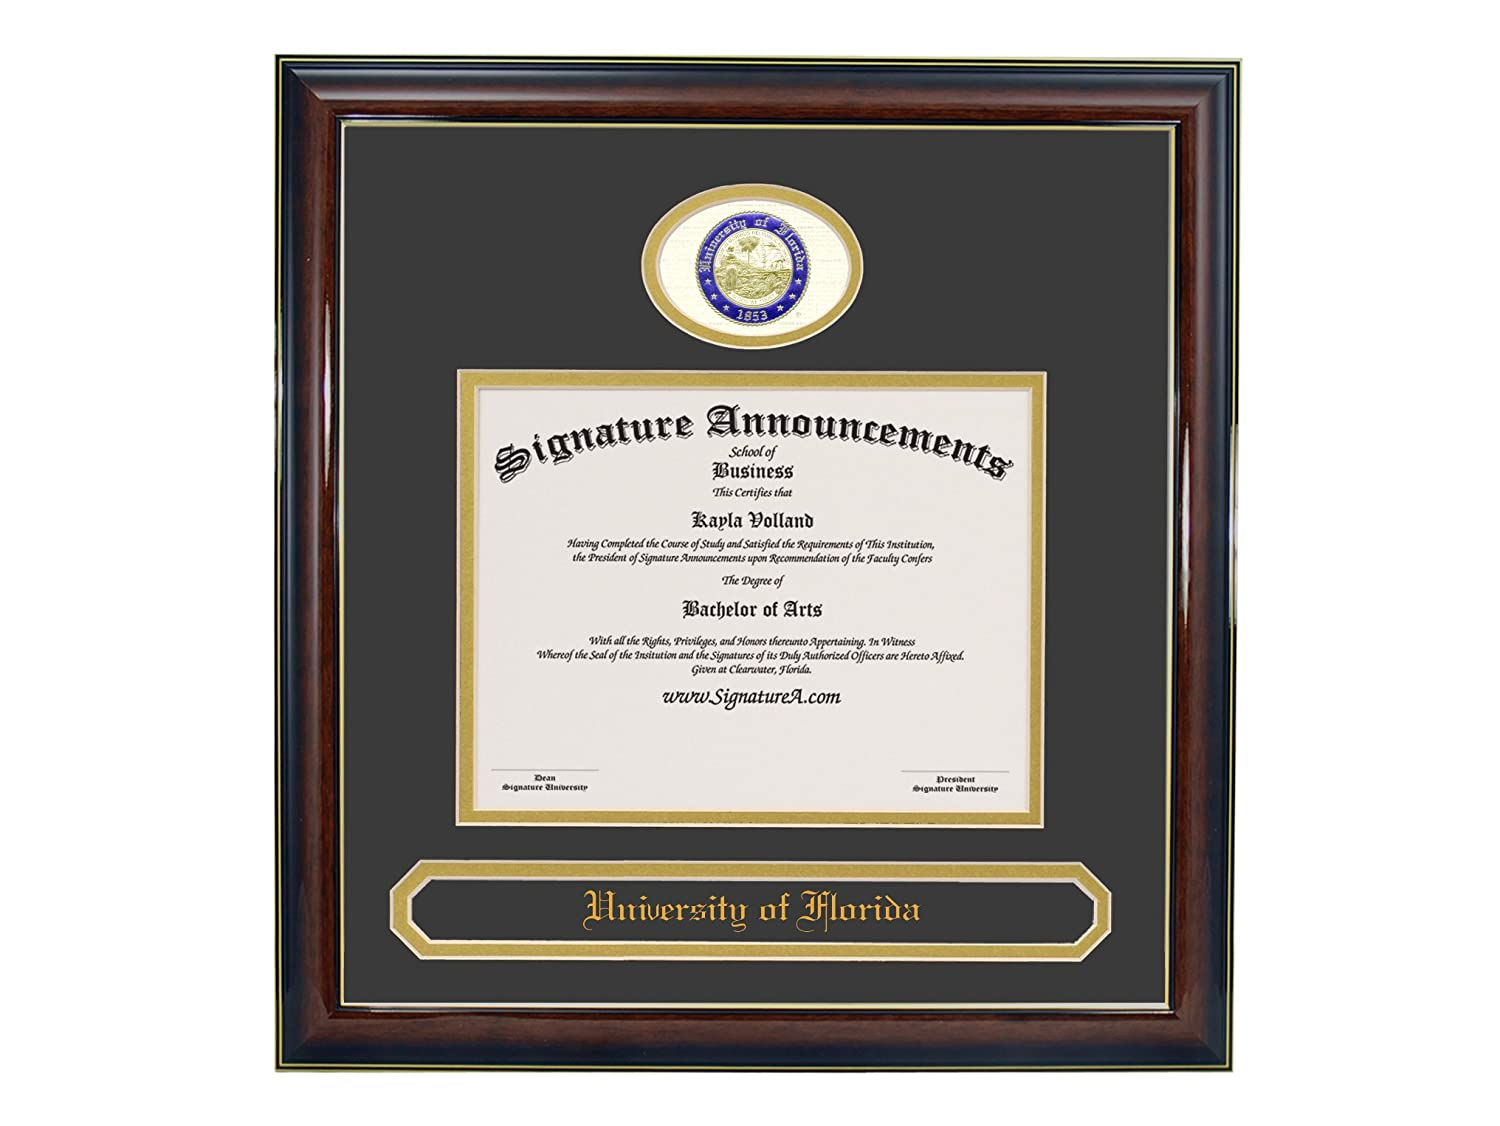 Undergraduate and Graduate Graduation Diploma Frame with Sculpted Foil Seal Gloss Mahogany w//Gold Accent, 20 x 20 Signature Announcements University of Florida UF